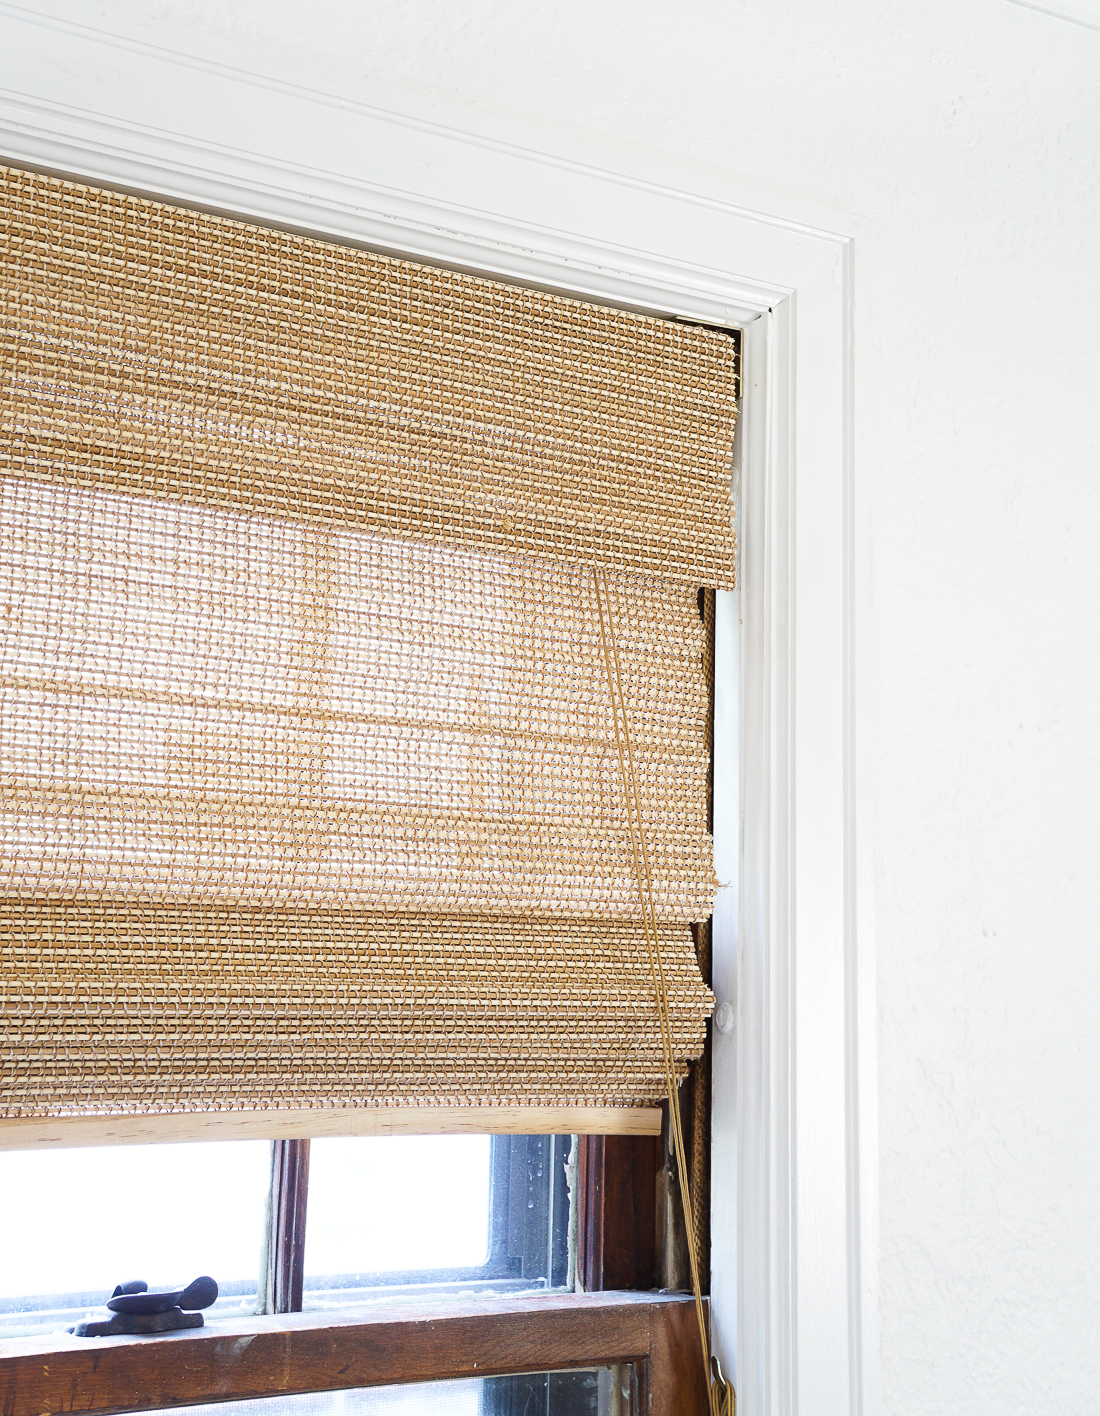 woven window shades living room customfit woven window shades are pretty penny so if you can how to cut down woven window shades francois et moi